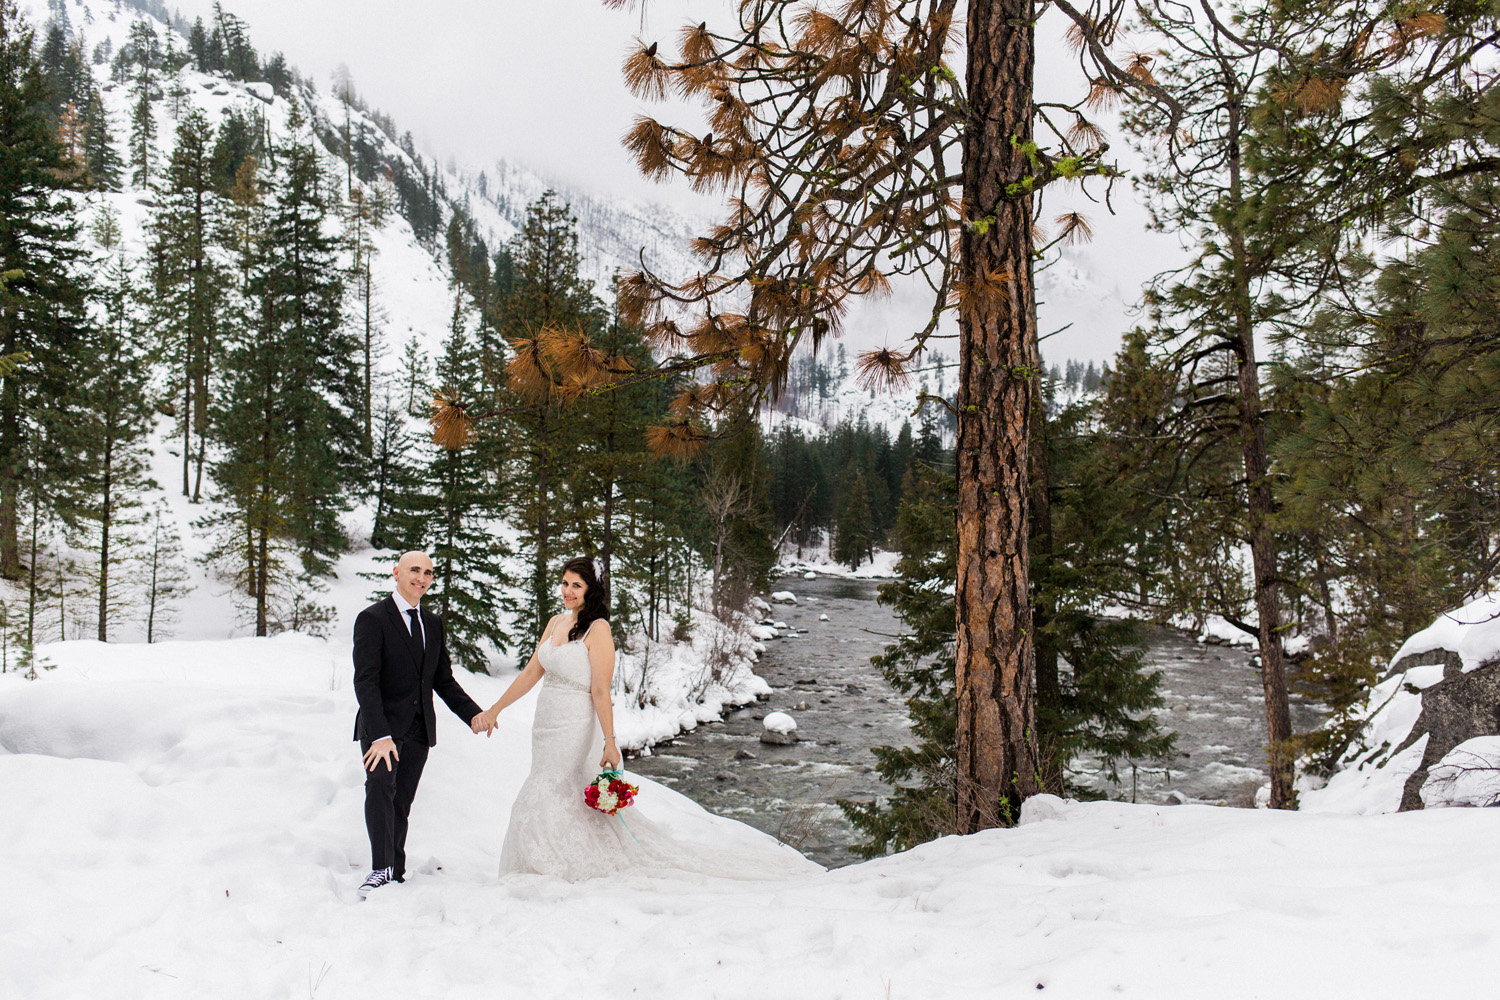 Sleeping Lady Mountain Resort In Leavenworth Winter Wedding Photography On Film By Icicle Creek: Winter Wedding Venue Leavenworth At Websimilar.org